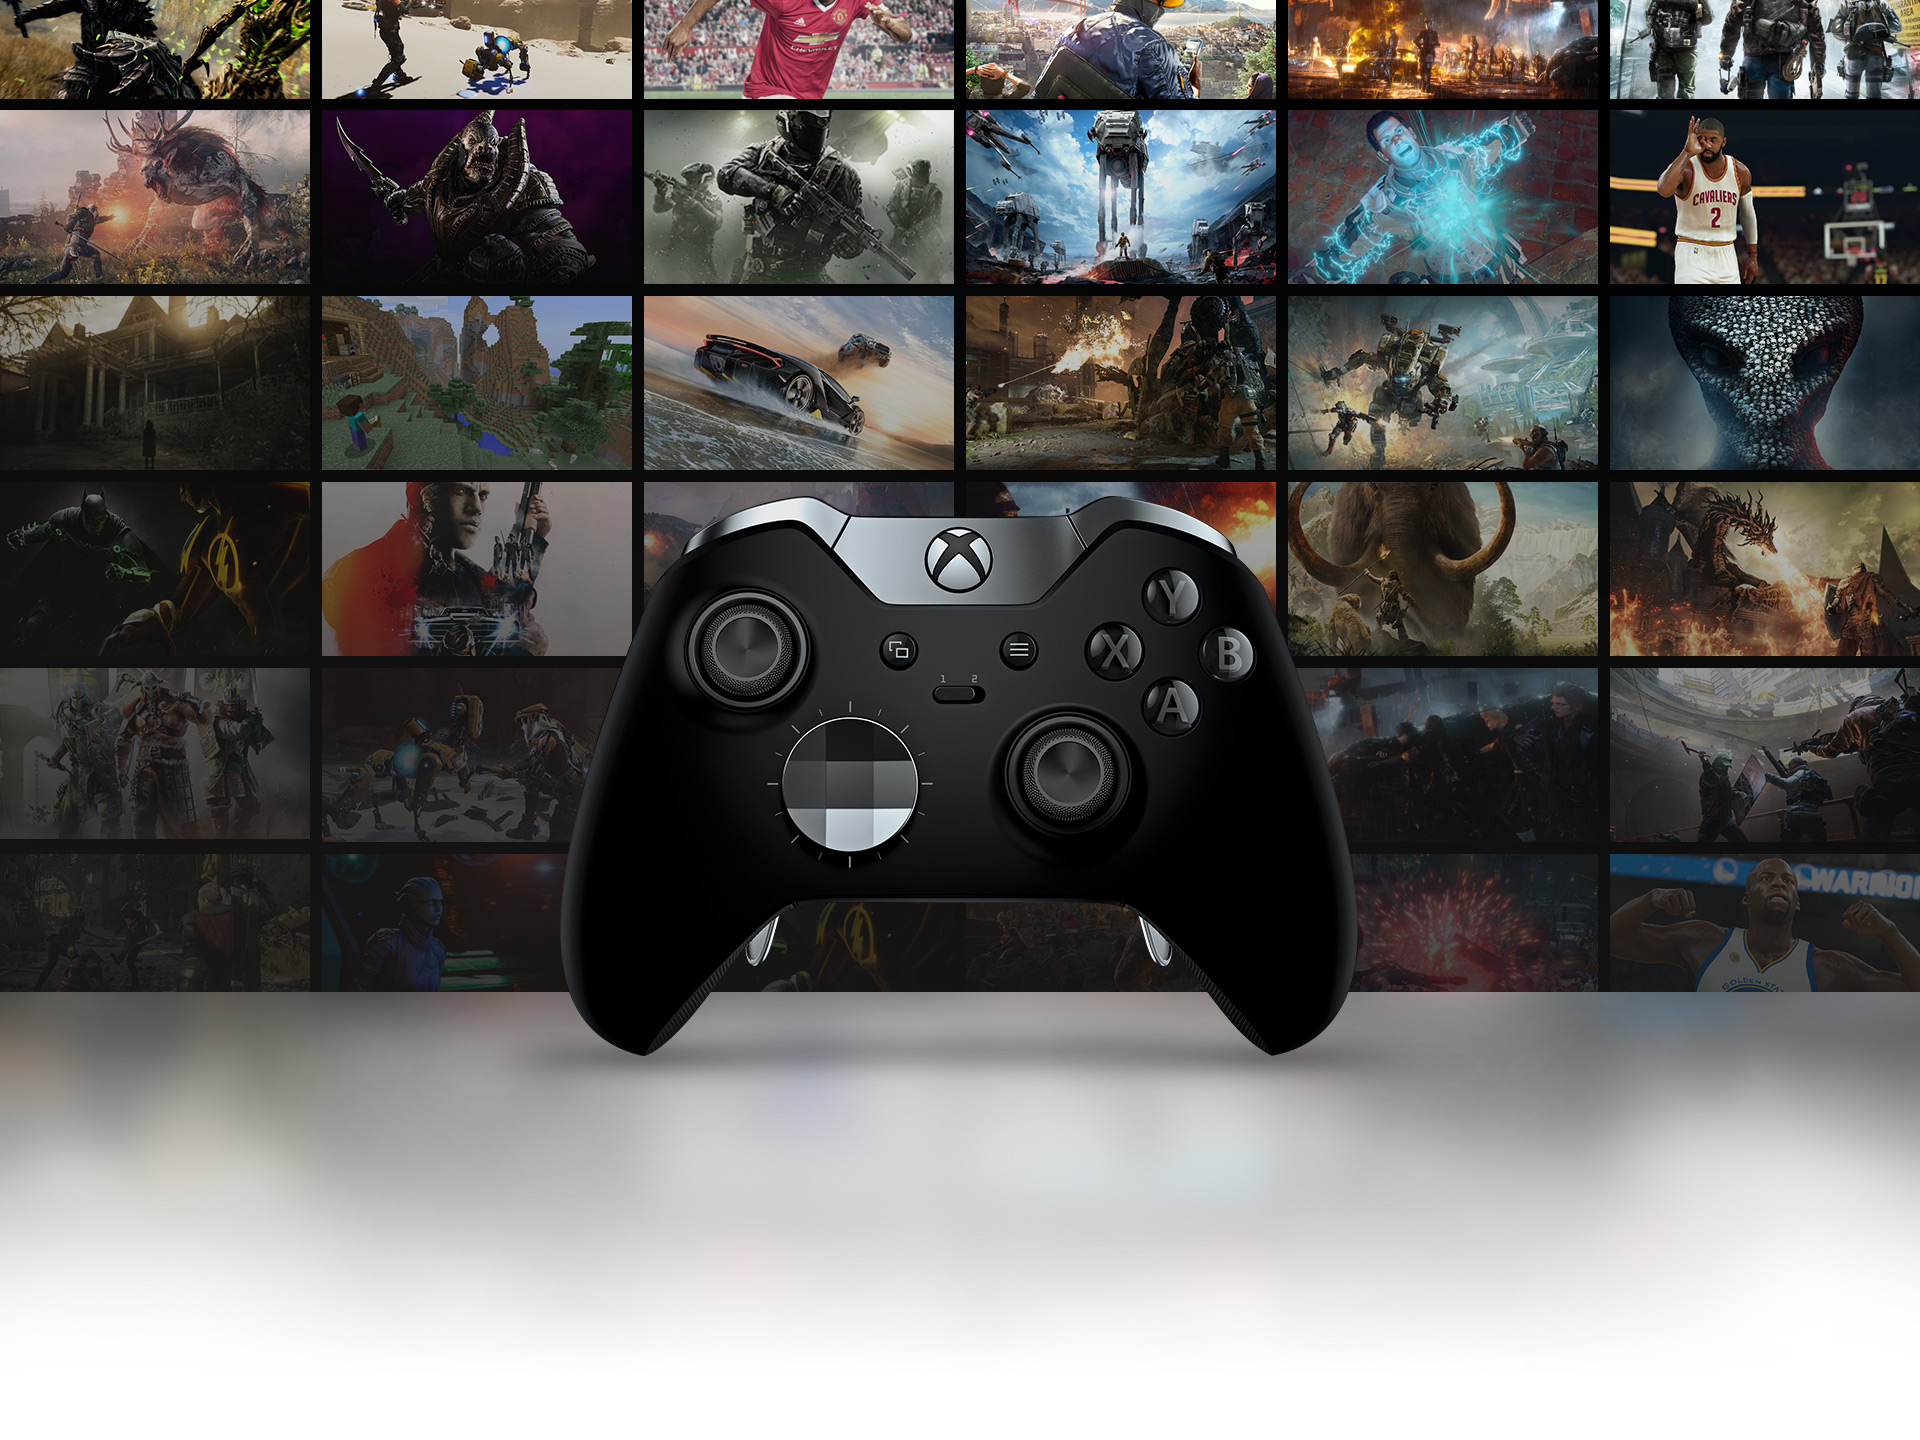 Elite Controller with screenshots for games as the background